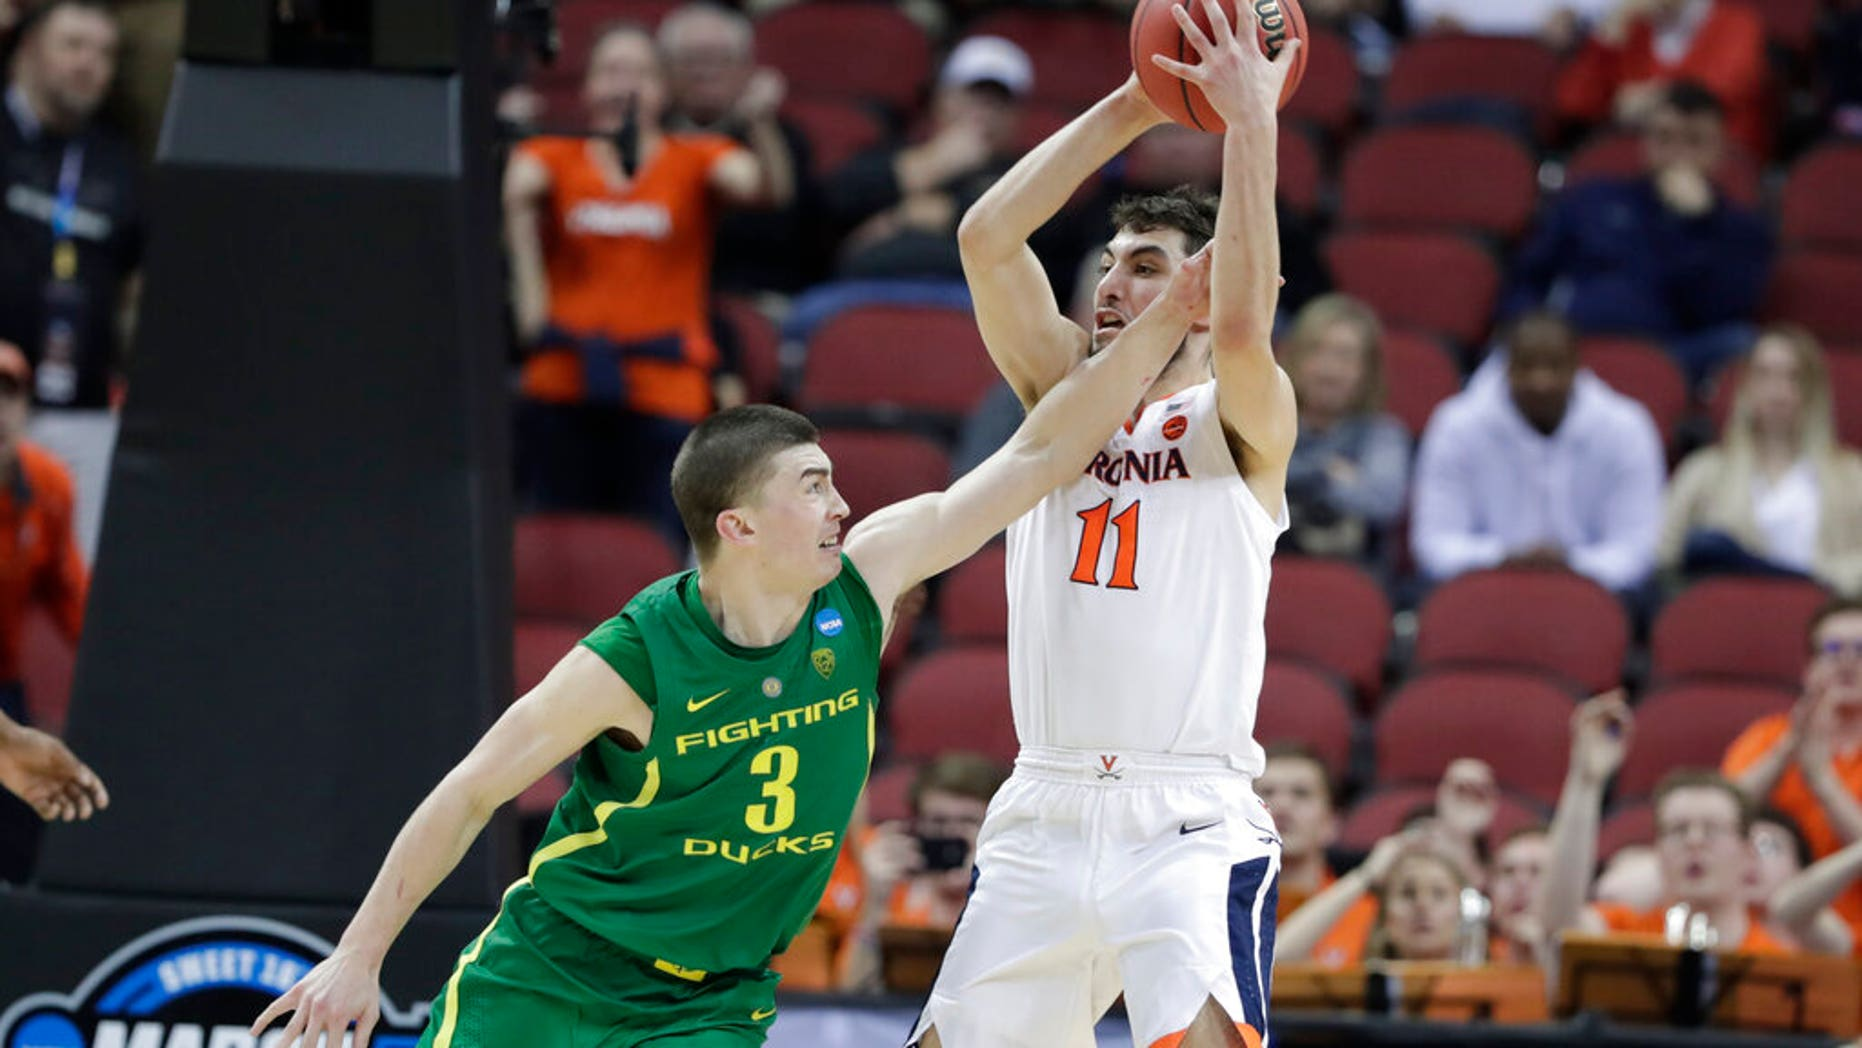 Virginia's Ty Jerome (11) is fouled by Oregon's Payton Pritchard (3) during the second half of a men's NCAA Tournament college basketball South Regional semifinal game. (Associated Press)